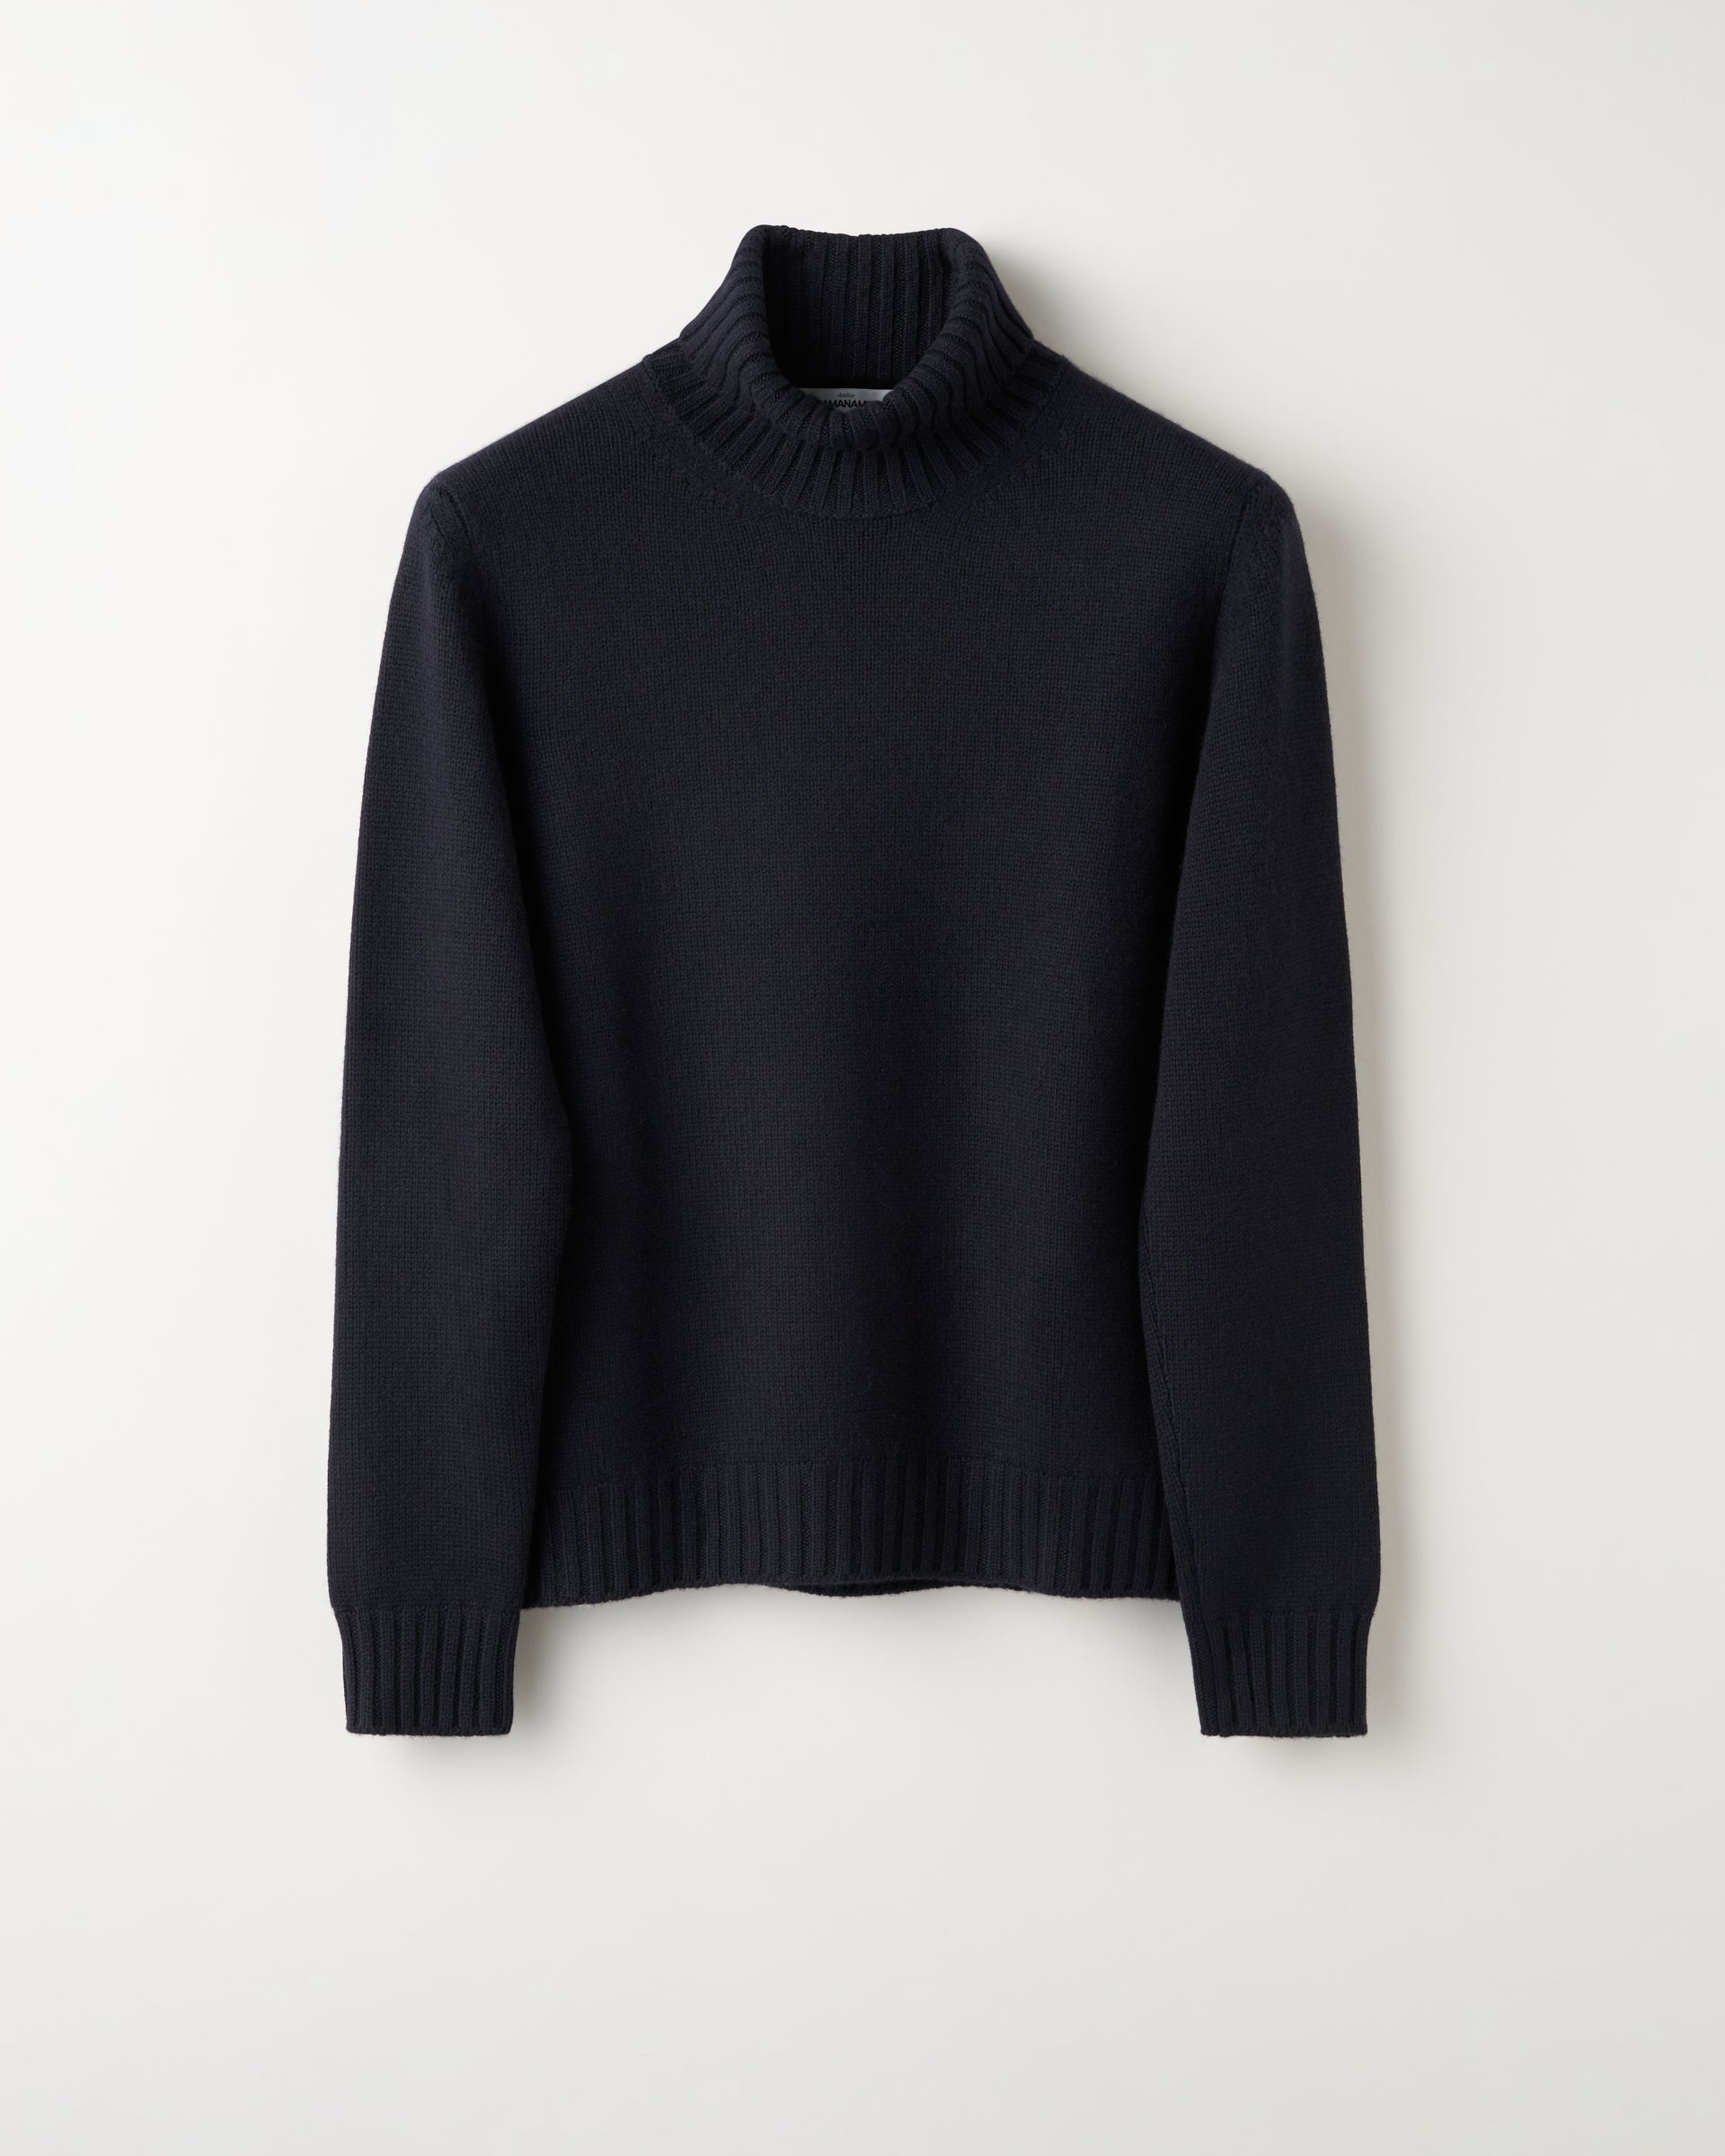 Rollneck 4ply Cashmere - Navy